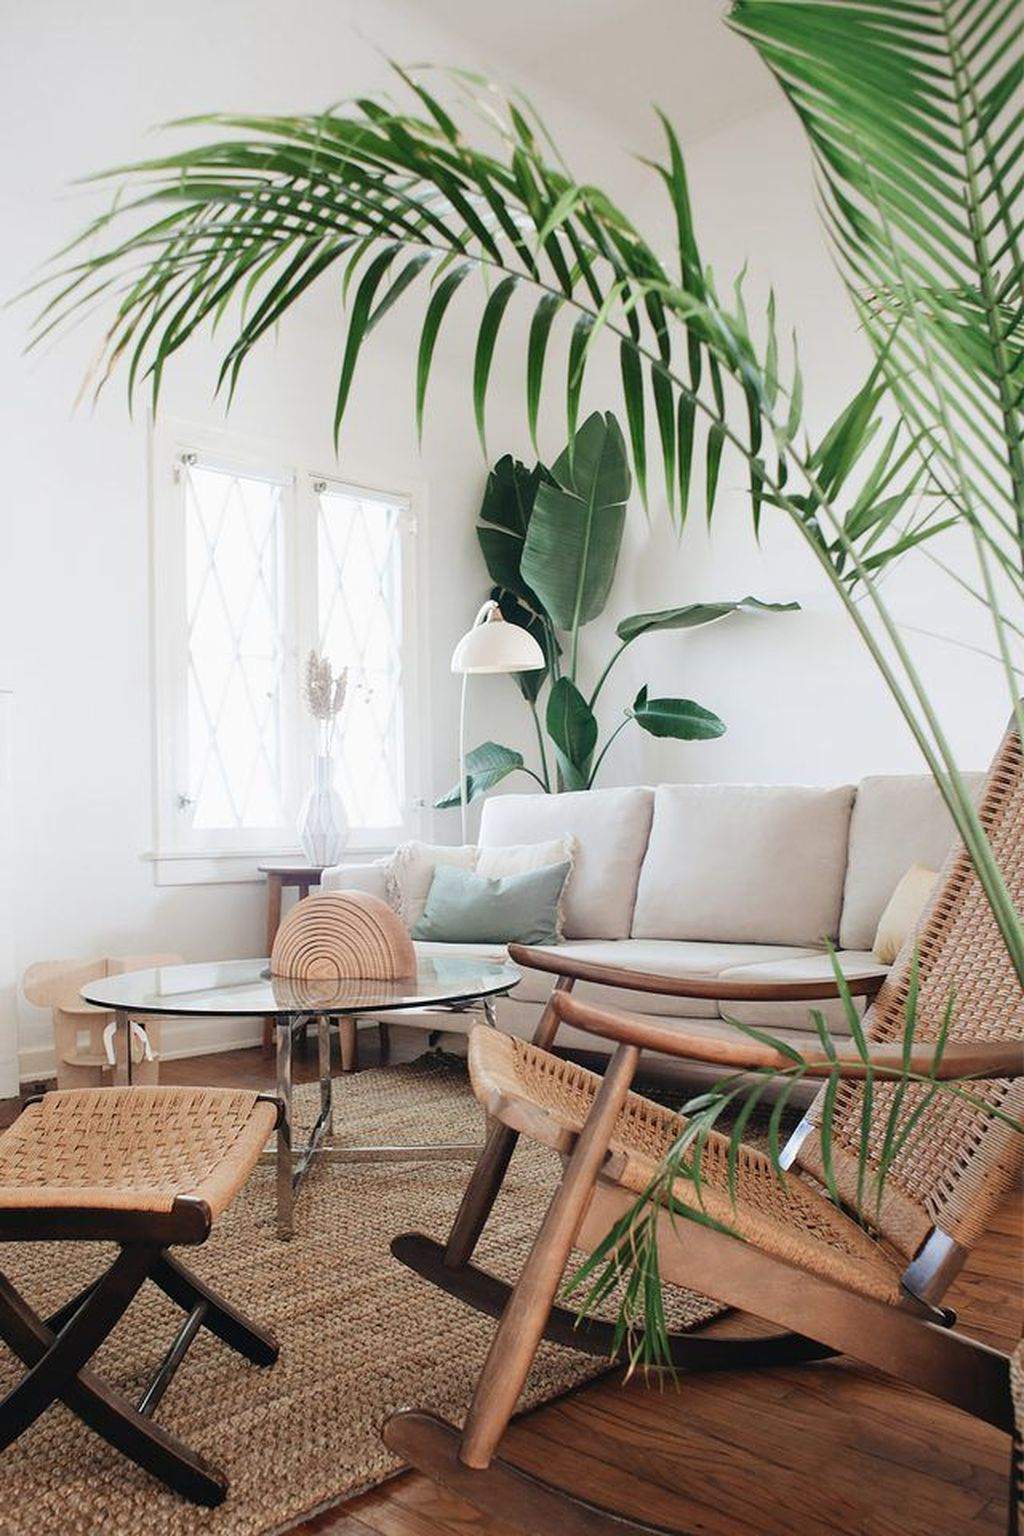 Best Summer Interior Design Ideas To Beautify Your Home 18